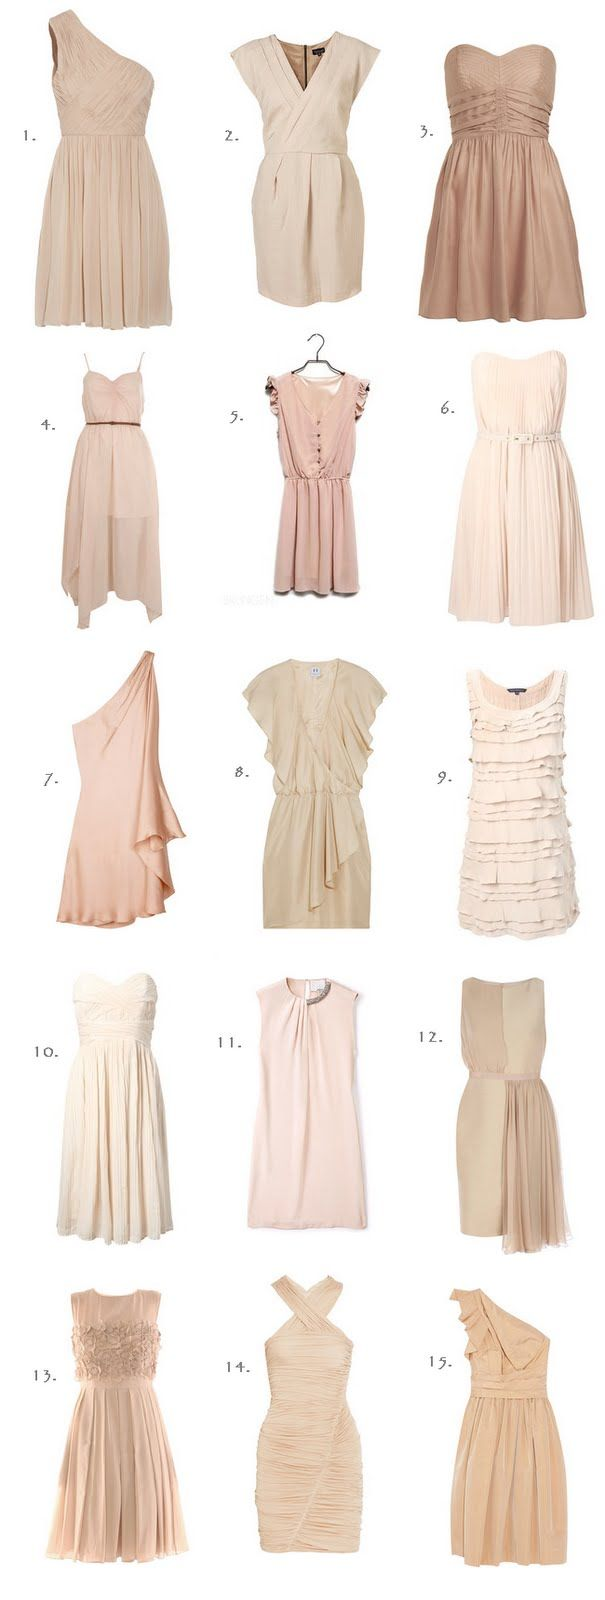 Best 25 tan bridesmaid dresses ideas only on pinterest nude heres an example of how blush bridesmaids dresses can compliment each other regardless of style ombrellifo Image collections